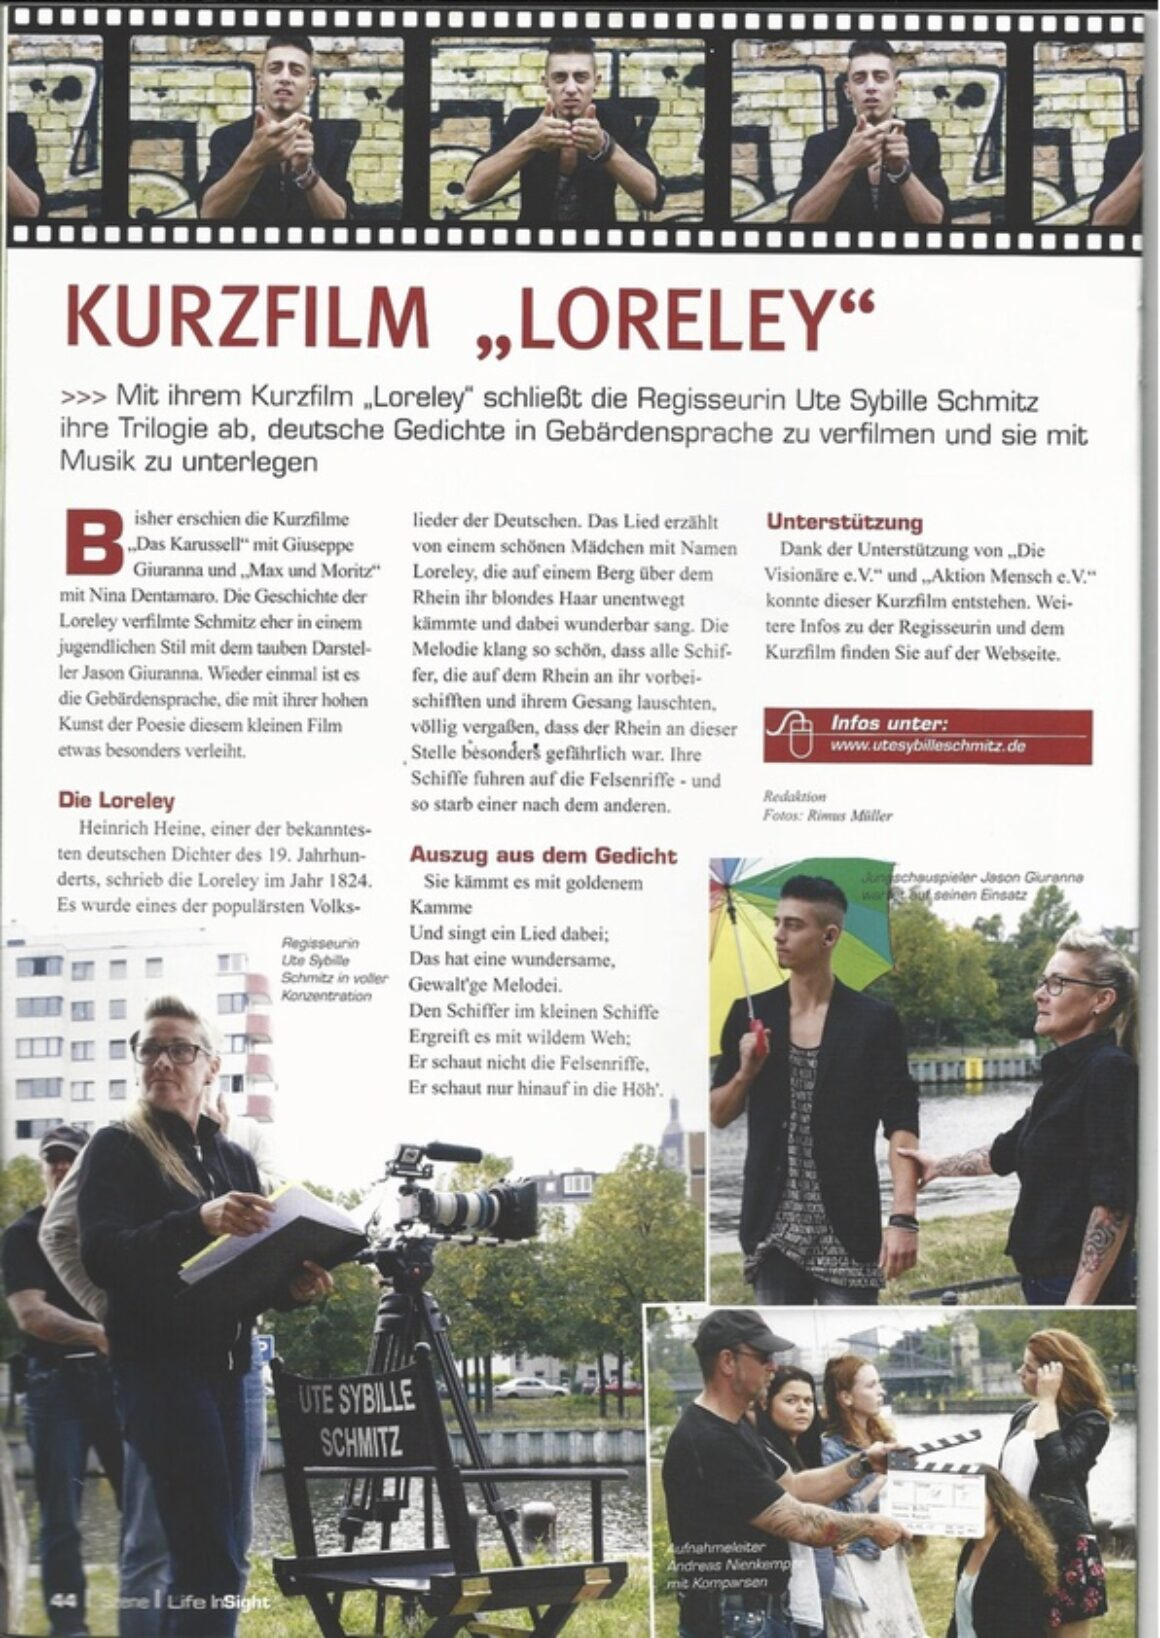 Life In Sight - Loreley